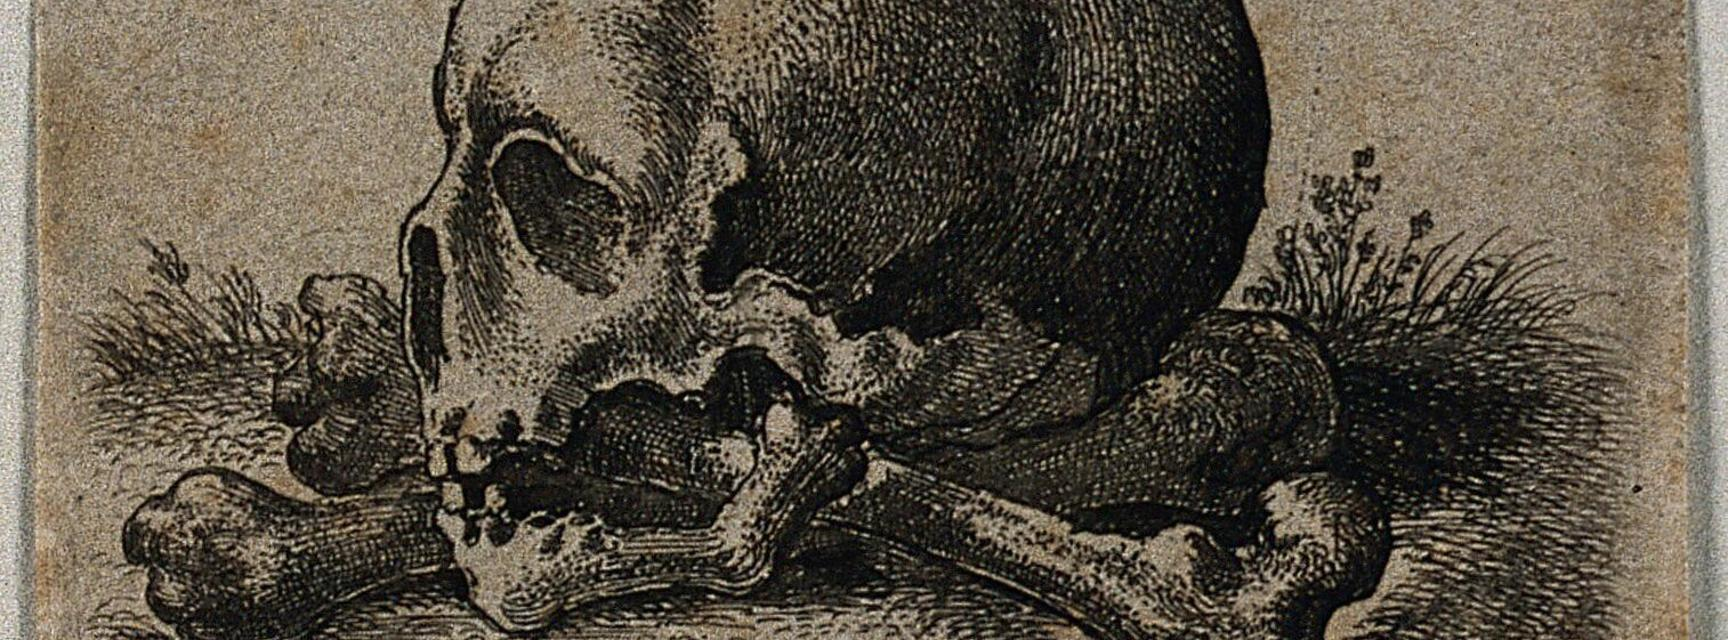 A skull in profile view, resting on two crossed femurs. Etching by Wenceslaus Hollar, 1652